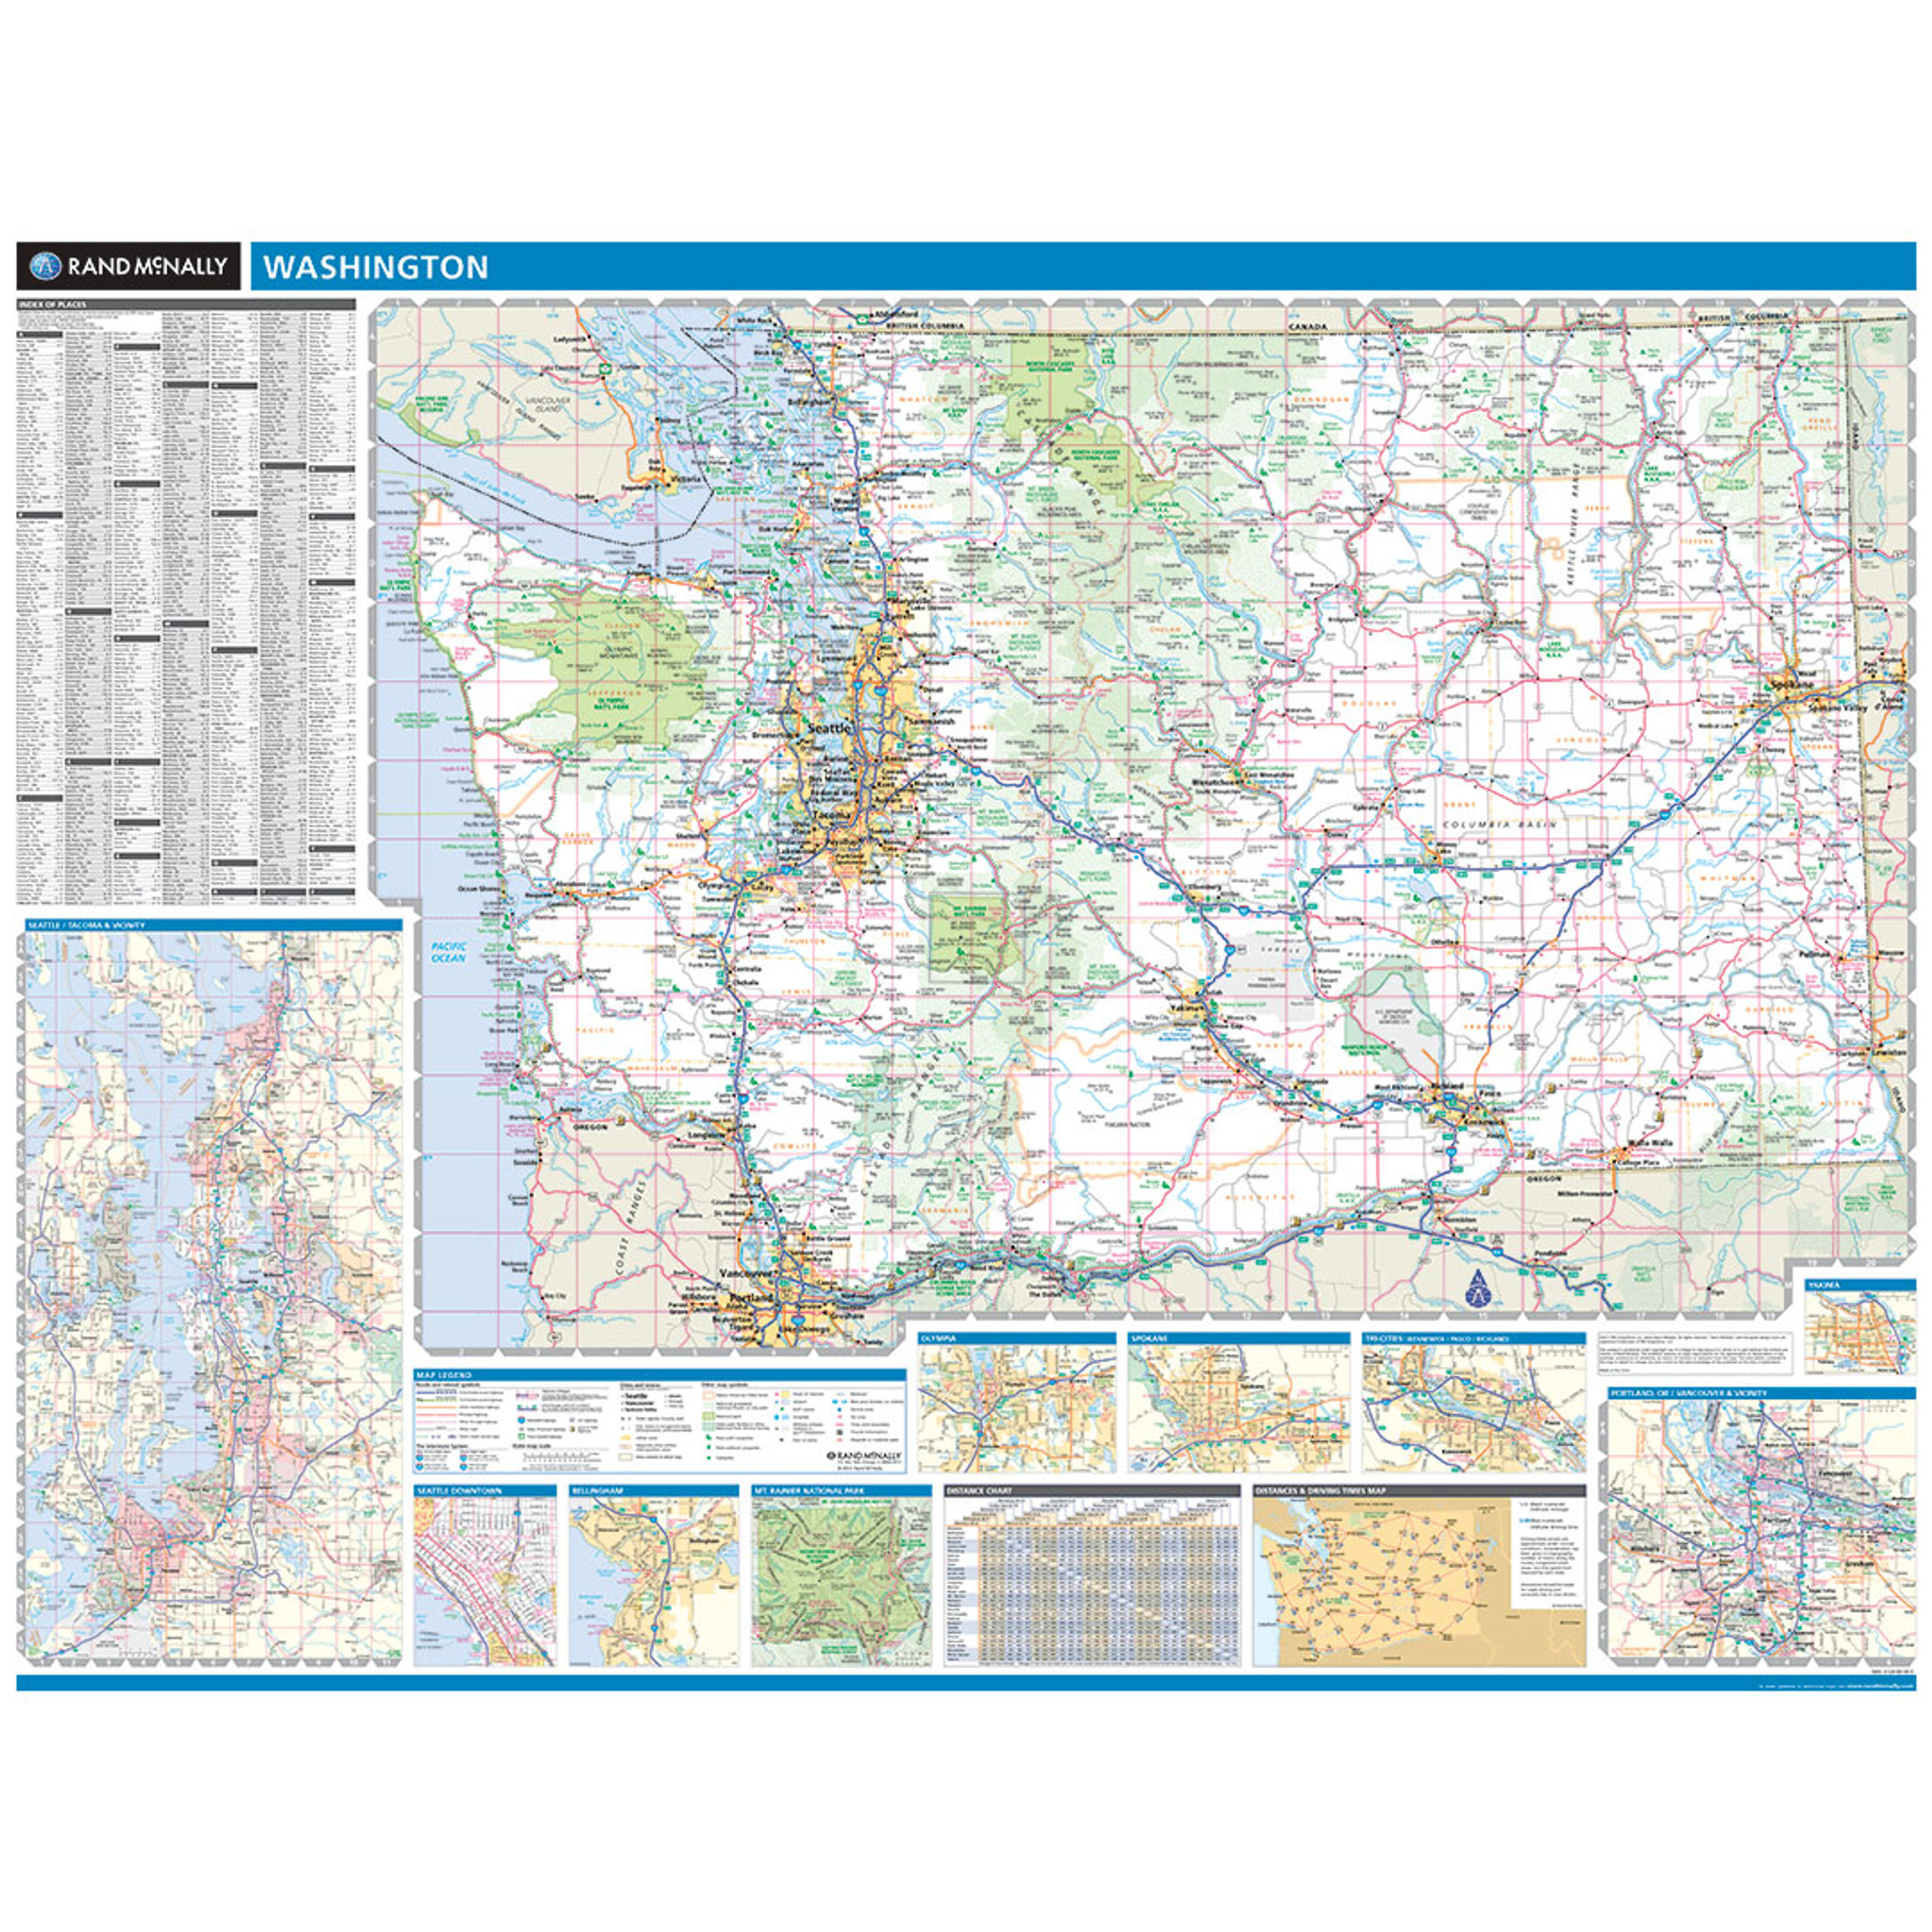 ProSeries Wall Map: Washington State on map of all georgia cities, map of colorado and nebraska borders, map of indiana area, map tilden nebraska, map of montana, map of eastern wyoming,